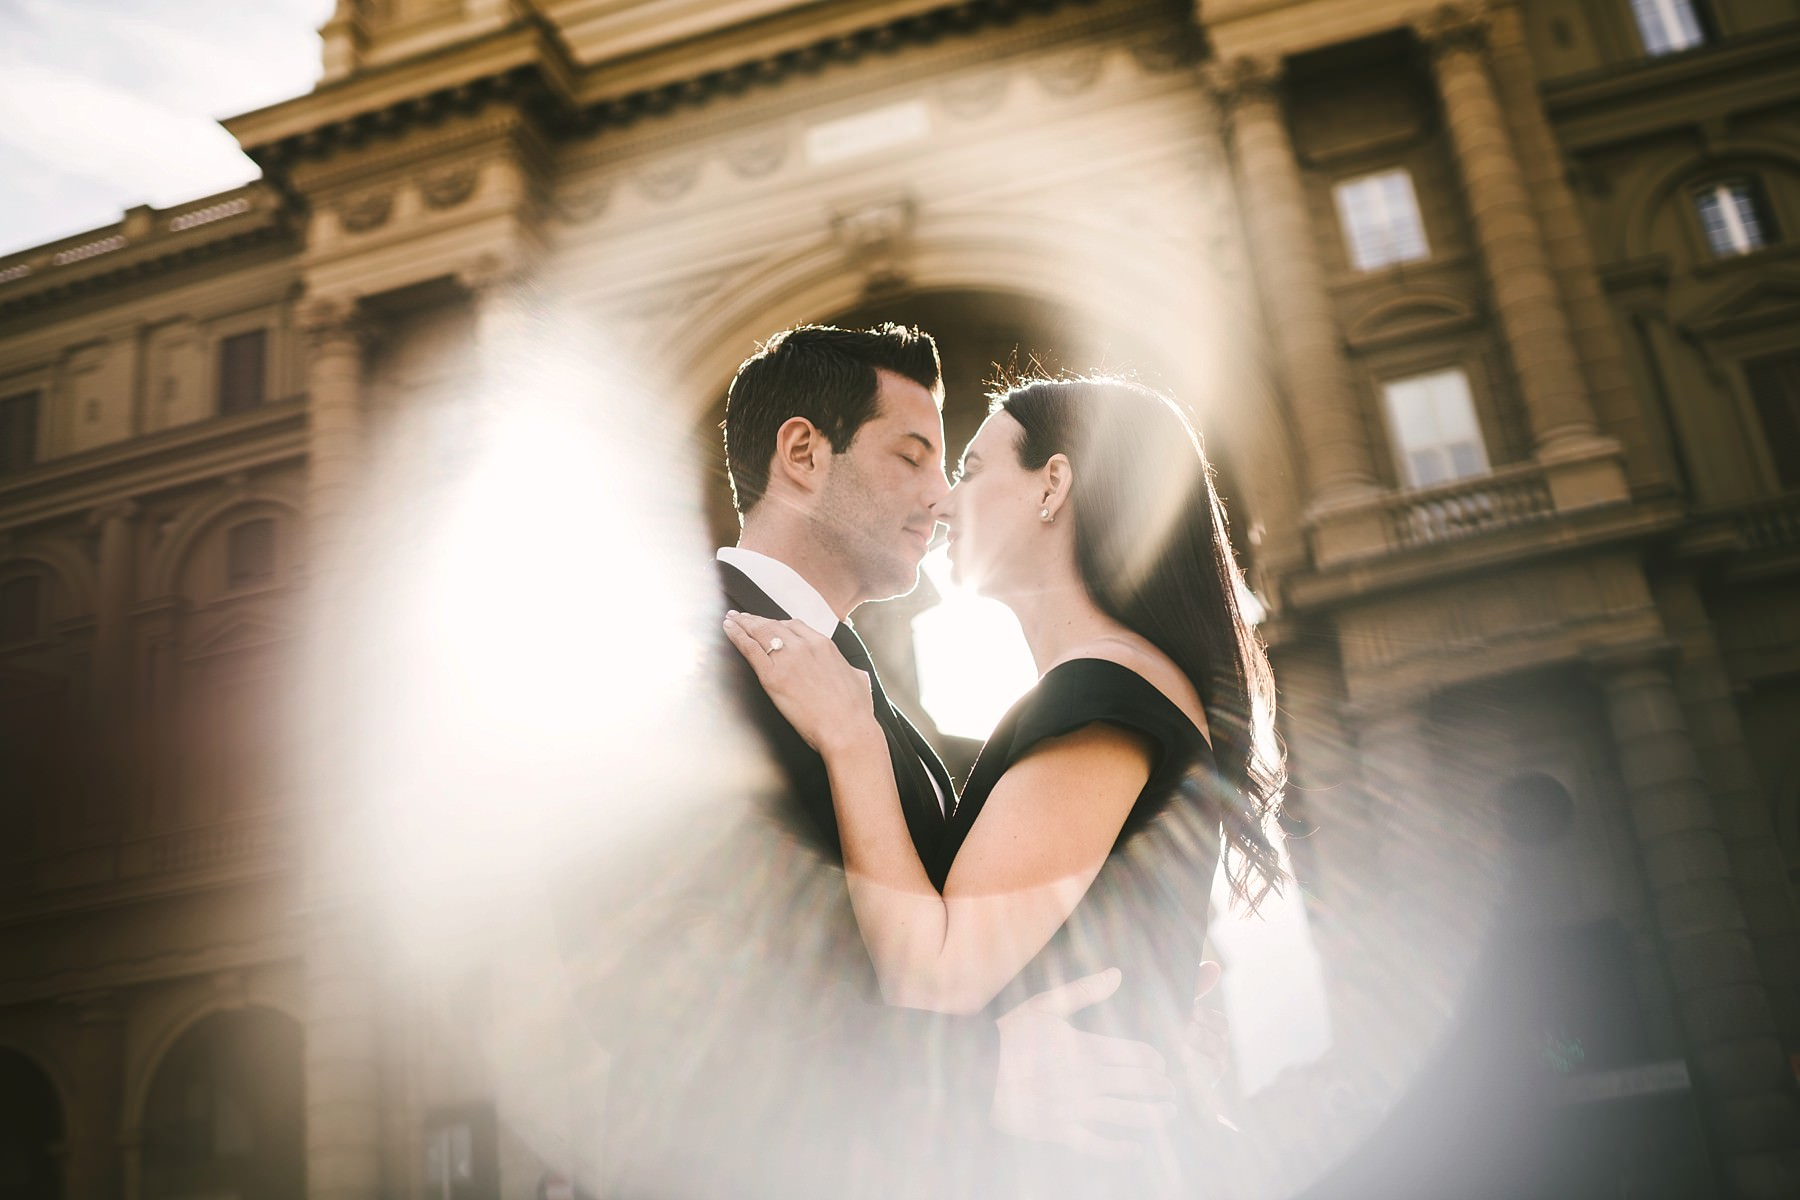 Creative use of the light in this couple portrait vacation engagement photo at Piazza della Repubblica